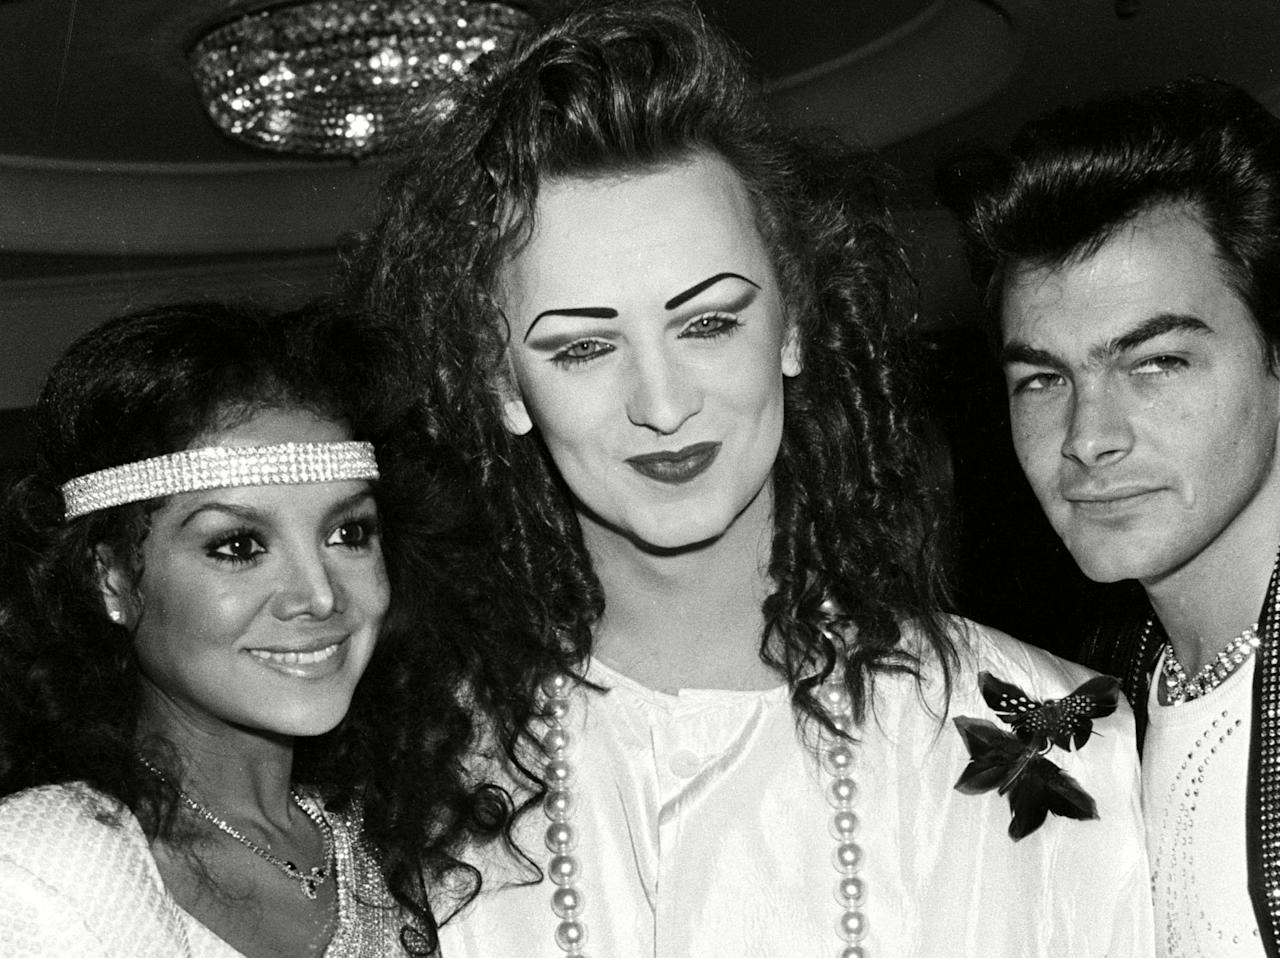 <p>Latoya Jackson, Boy George and Jon Moss of Culture Club back stage at the Brits. (Alan Davidson / Silverhub/REX/Shutterstock) </p>